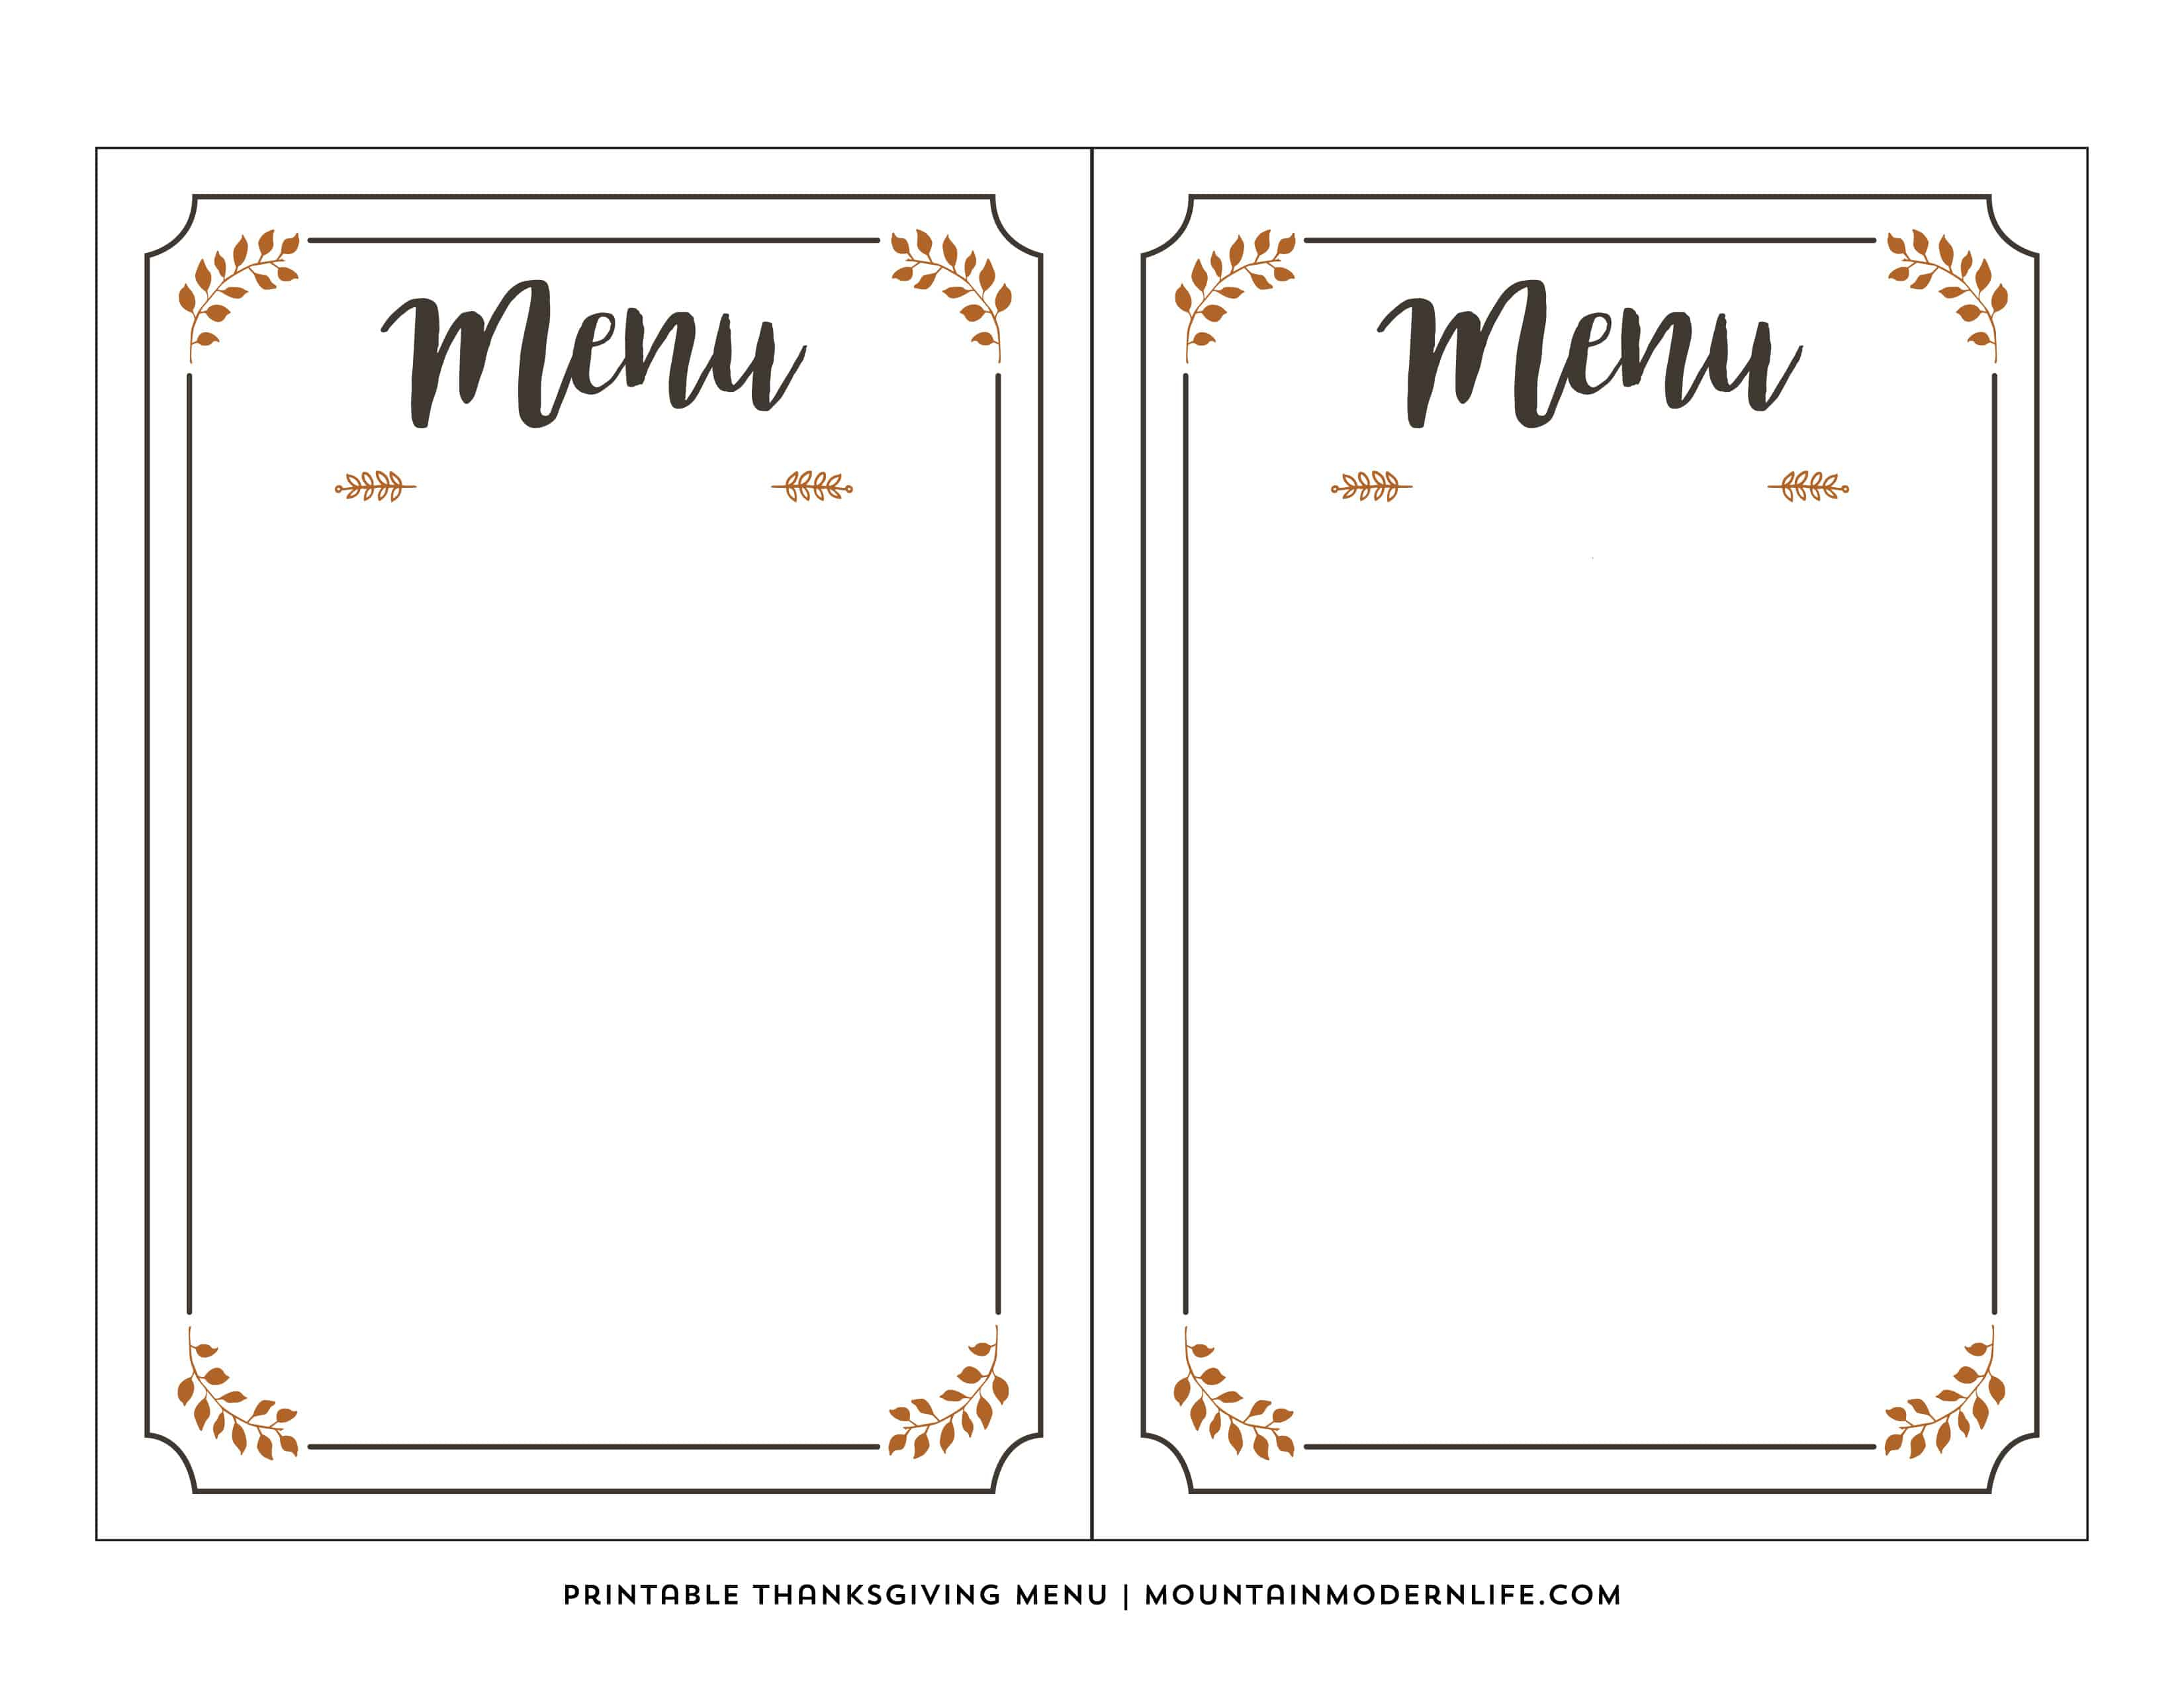 Free Printable Thanksgiving Menu | Mountainmodernlife - Free Printable Menu